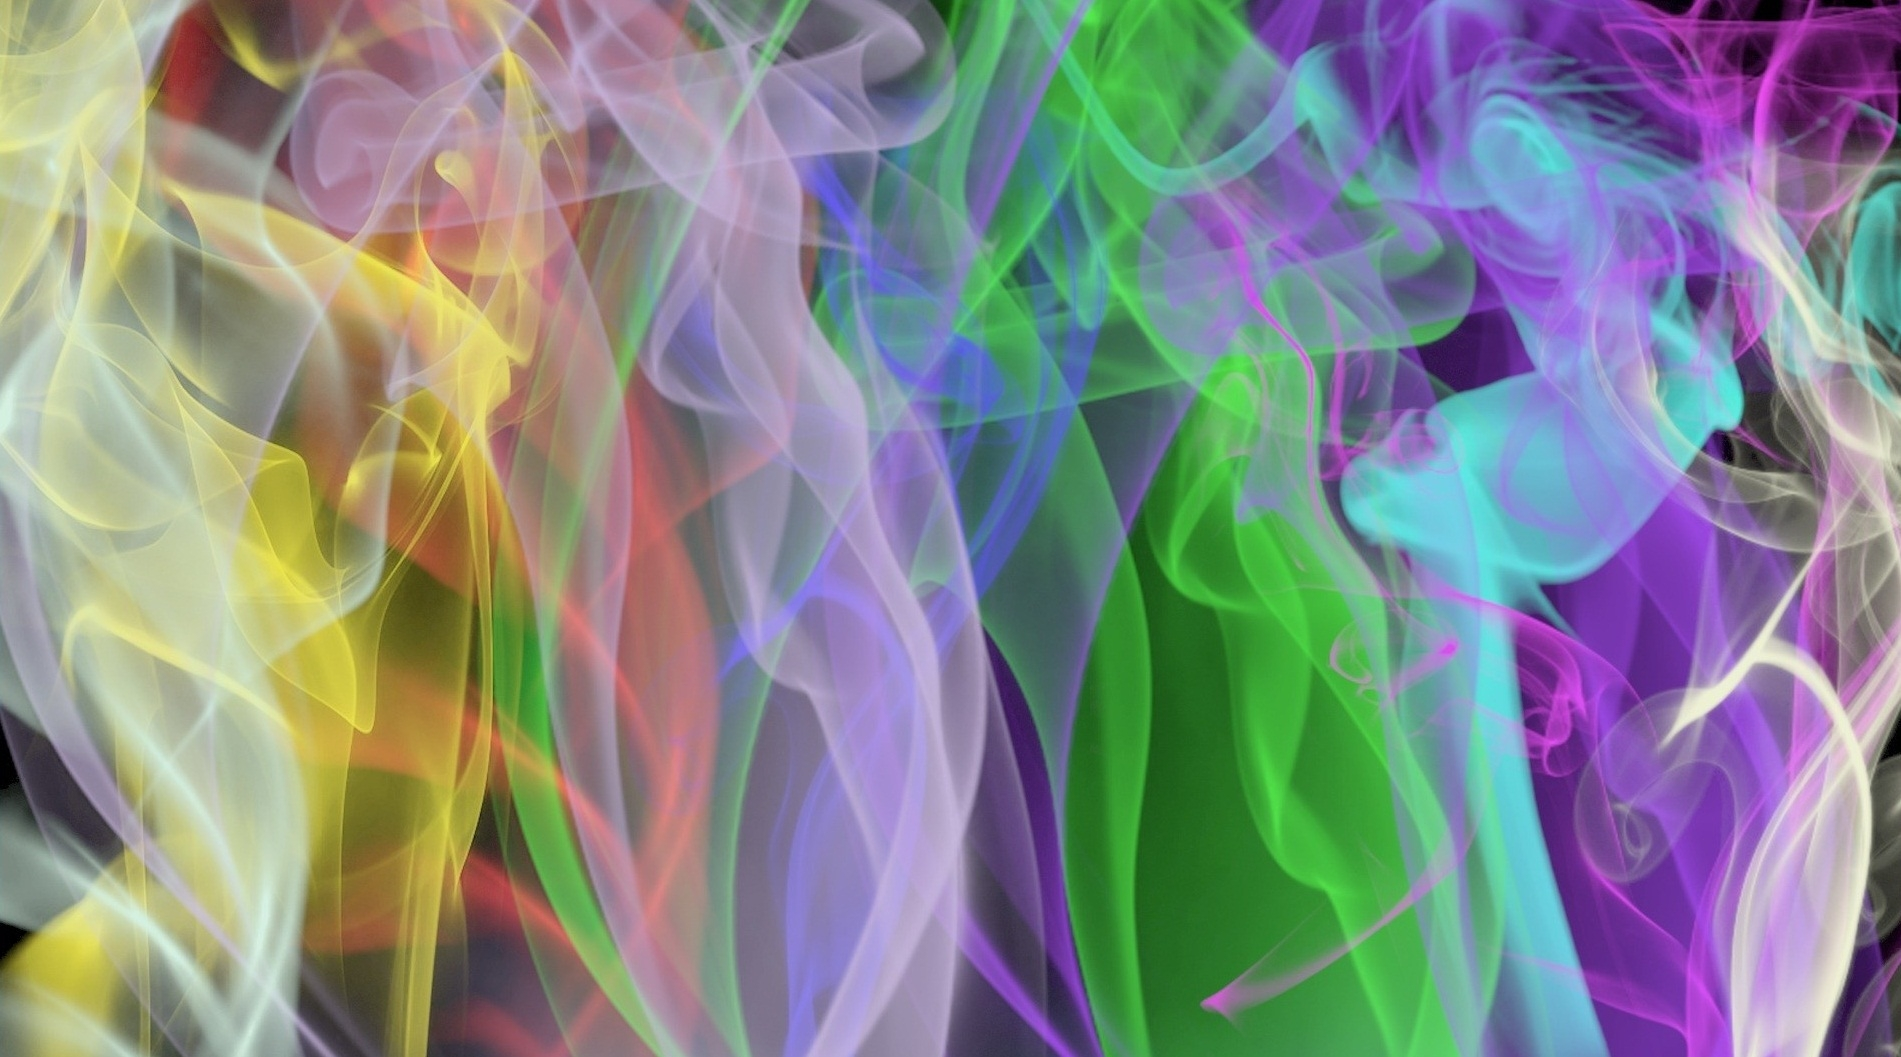 76370 download wallpaper Abstract, Colorful, Colourful, Shroud, Clot, Smoke screensavers and pictures for free